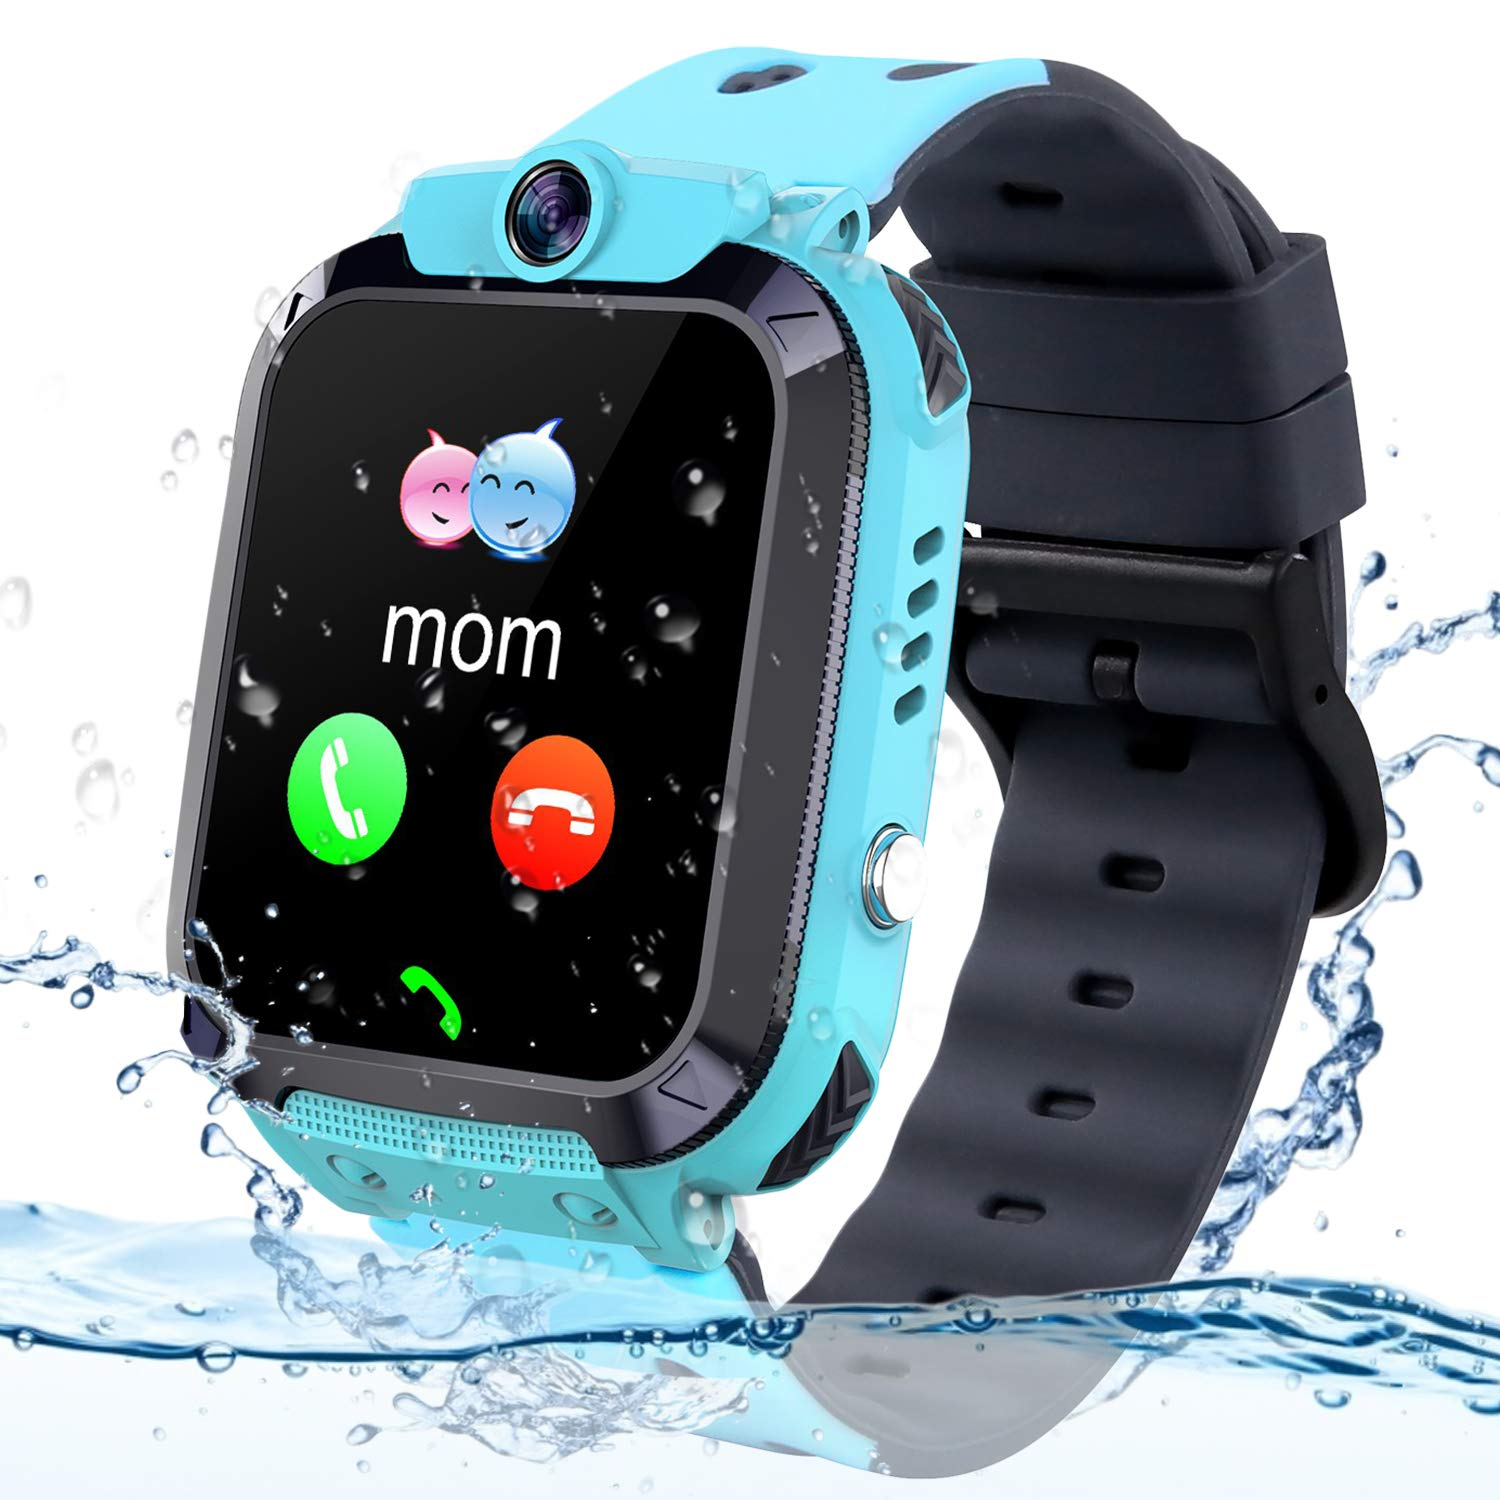 Themoemoe Kids GPS Tracker Watch, Kids Smartwatch IP68 Waterproof With GPS Tracker Phone Alarm Clock Game Camera Compatible with 2G T-mobile Birthday Gift for Kids(S12B-Blue) by Themoemoe